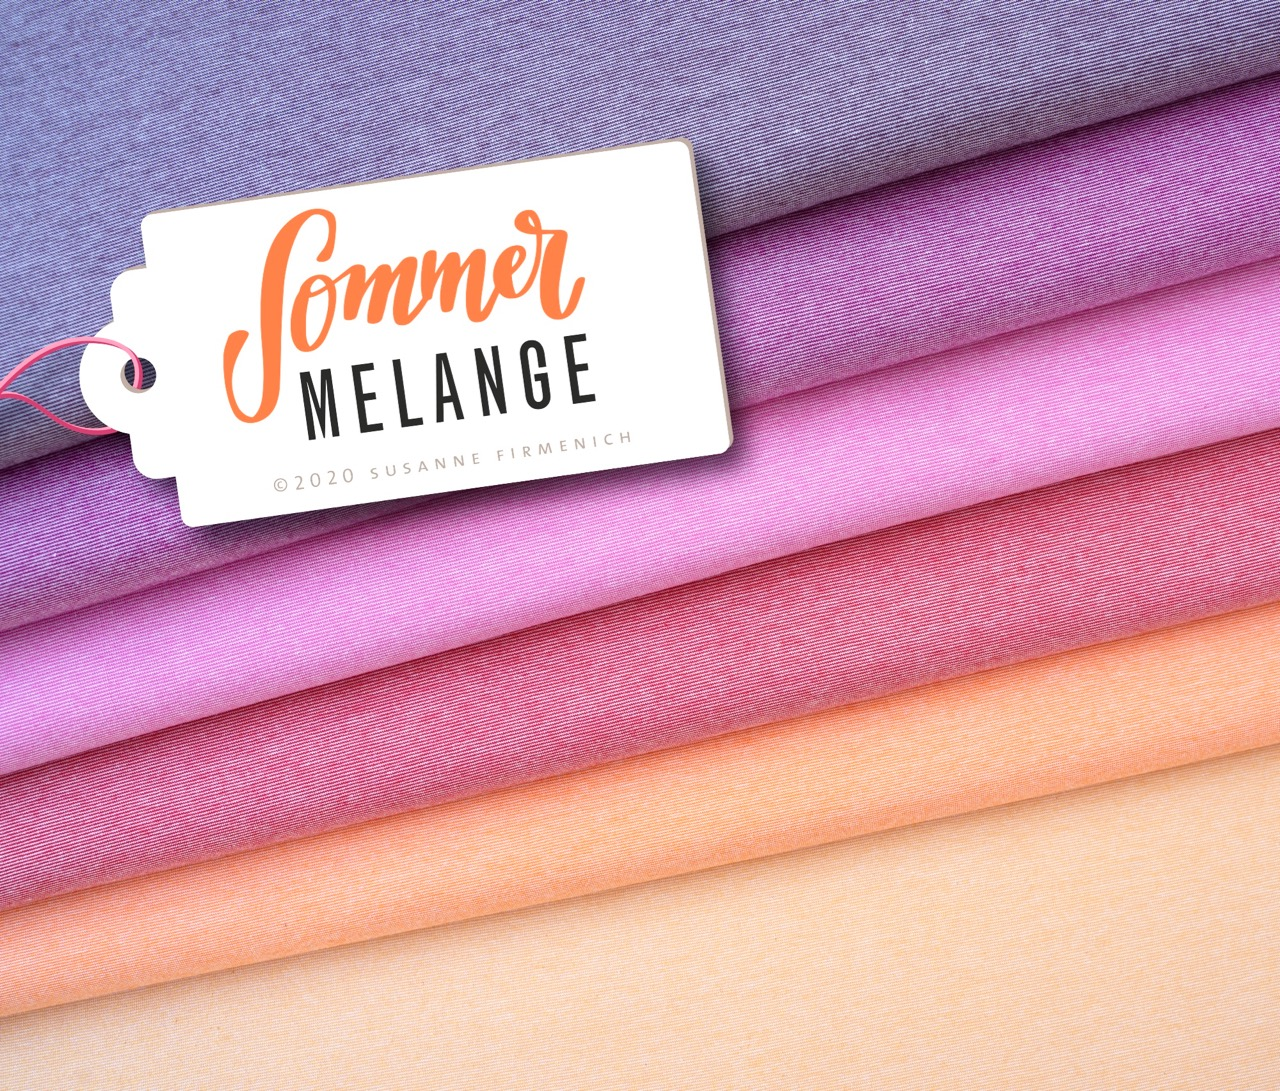 Mélange Single Jersey - Sommerfarben in Pastell Pink